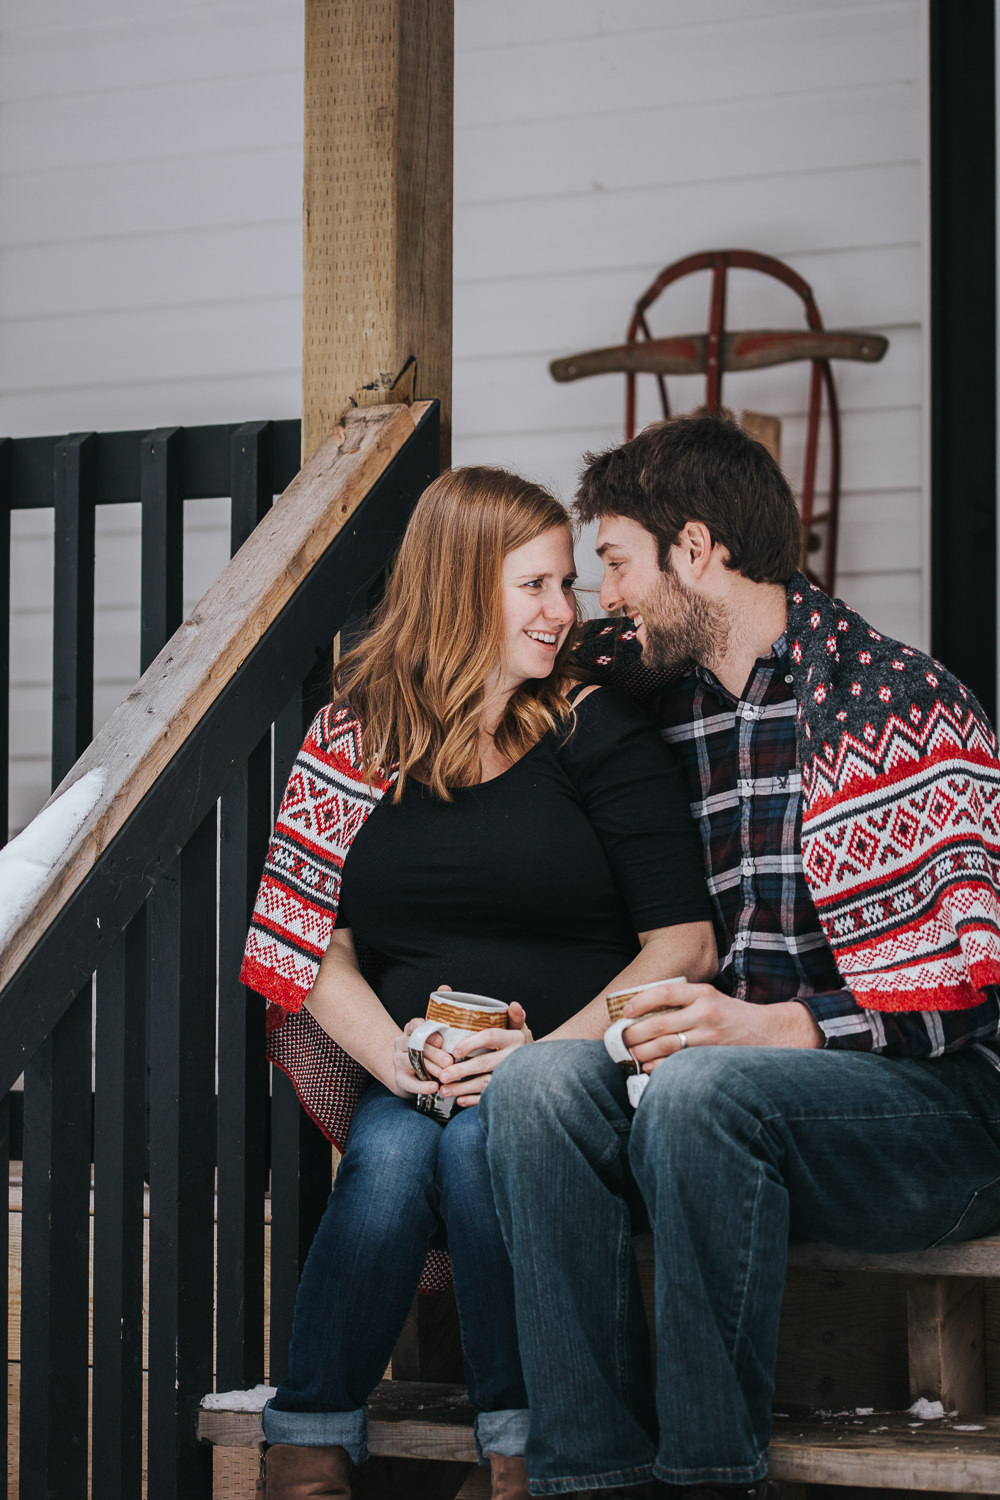 parents to be sitting on front porch steps wrapped in blanket looking at one another  - Newmarket lifestyle photos